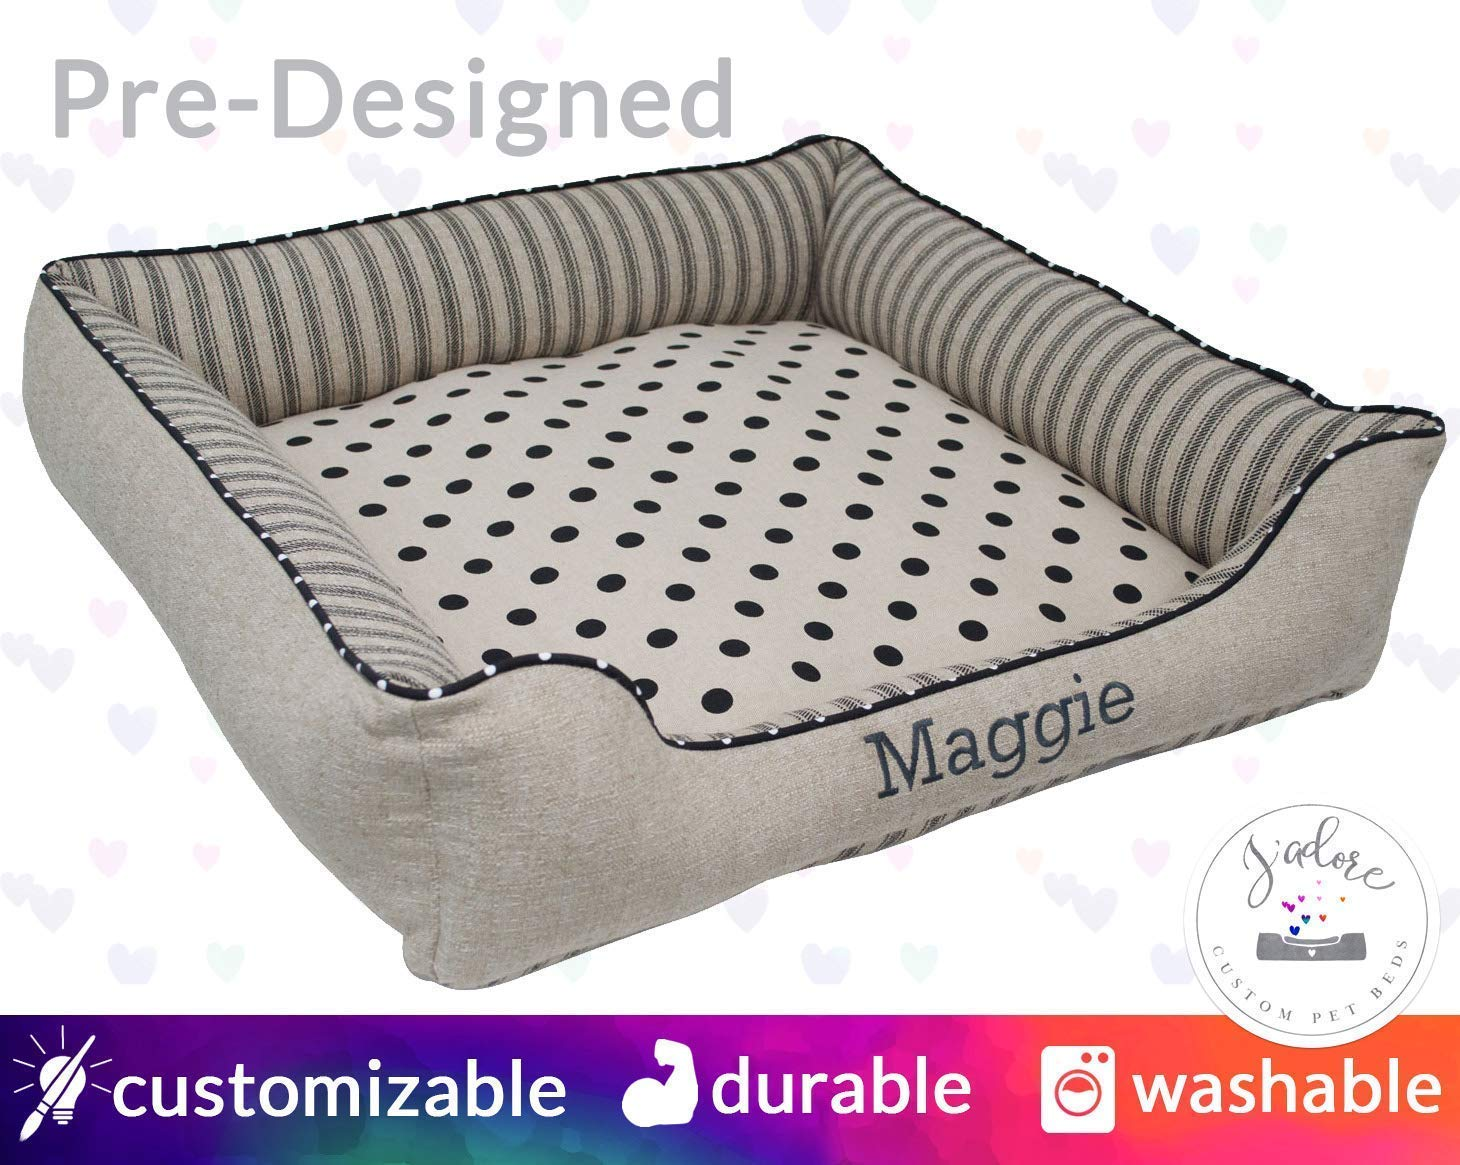 Neutral Dog Bed Personalized Pet Bed | Ticking Polka Dot Black Natural Linen | Name Embroidery Washable